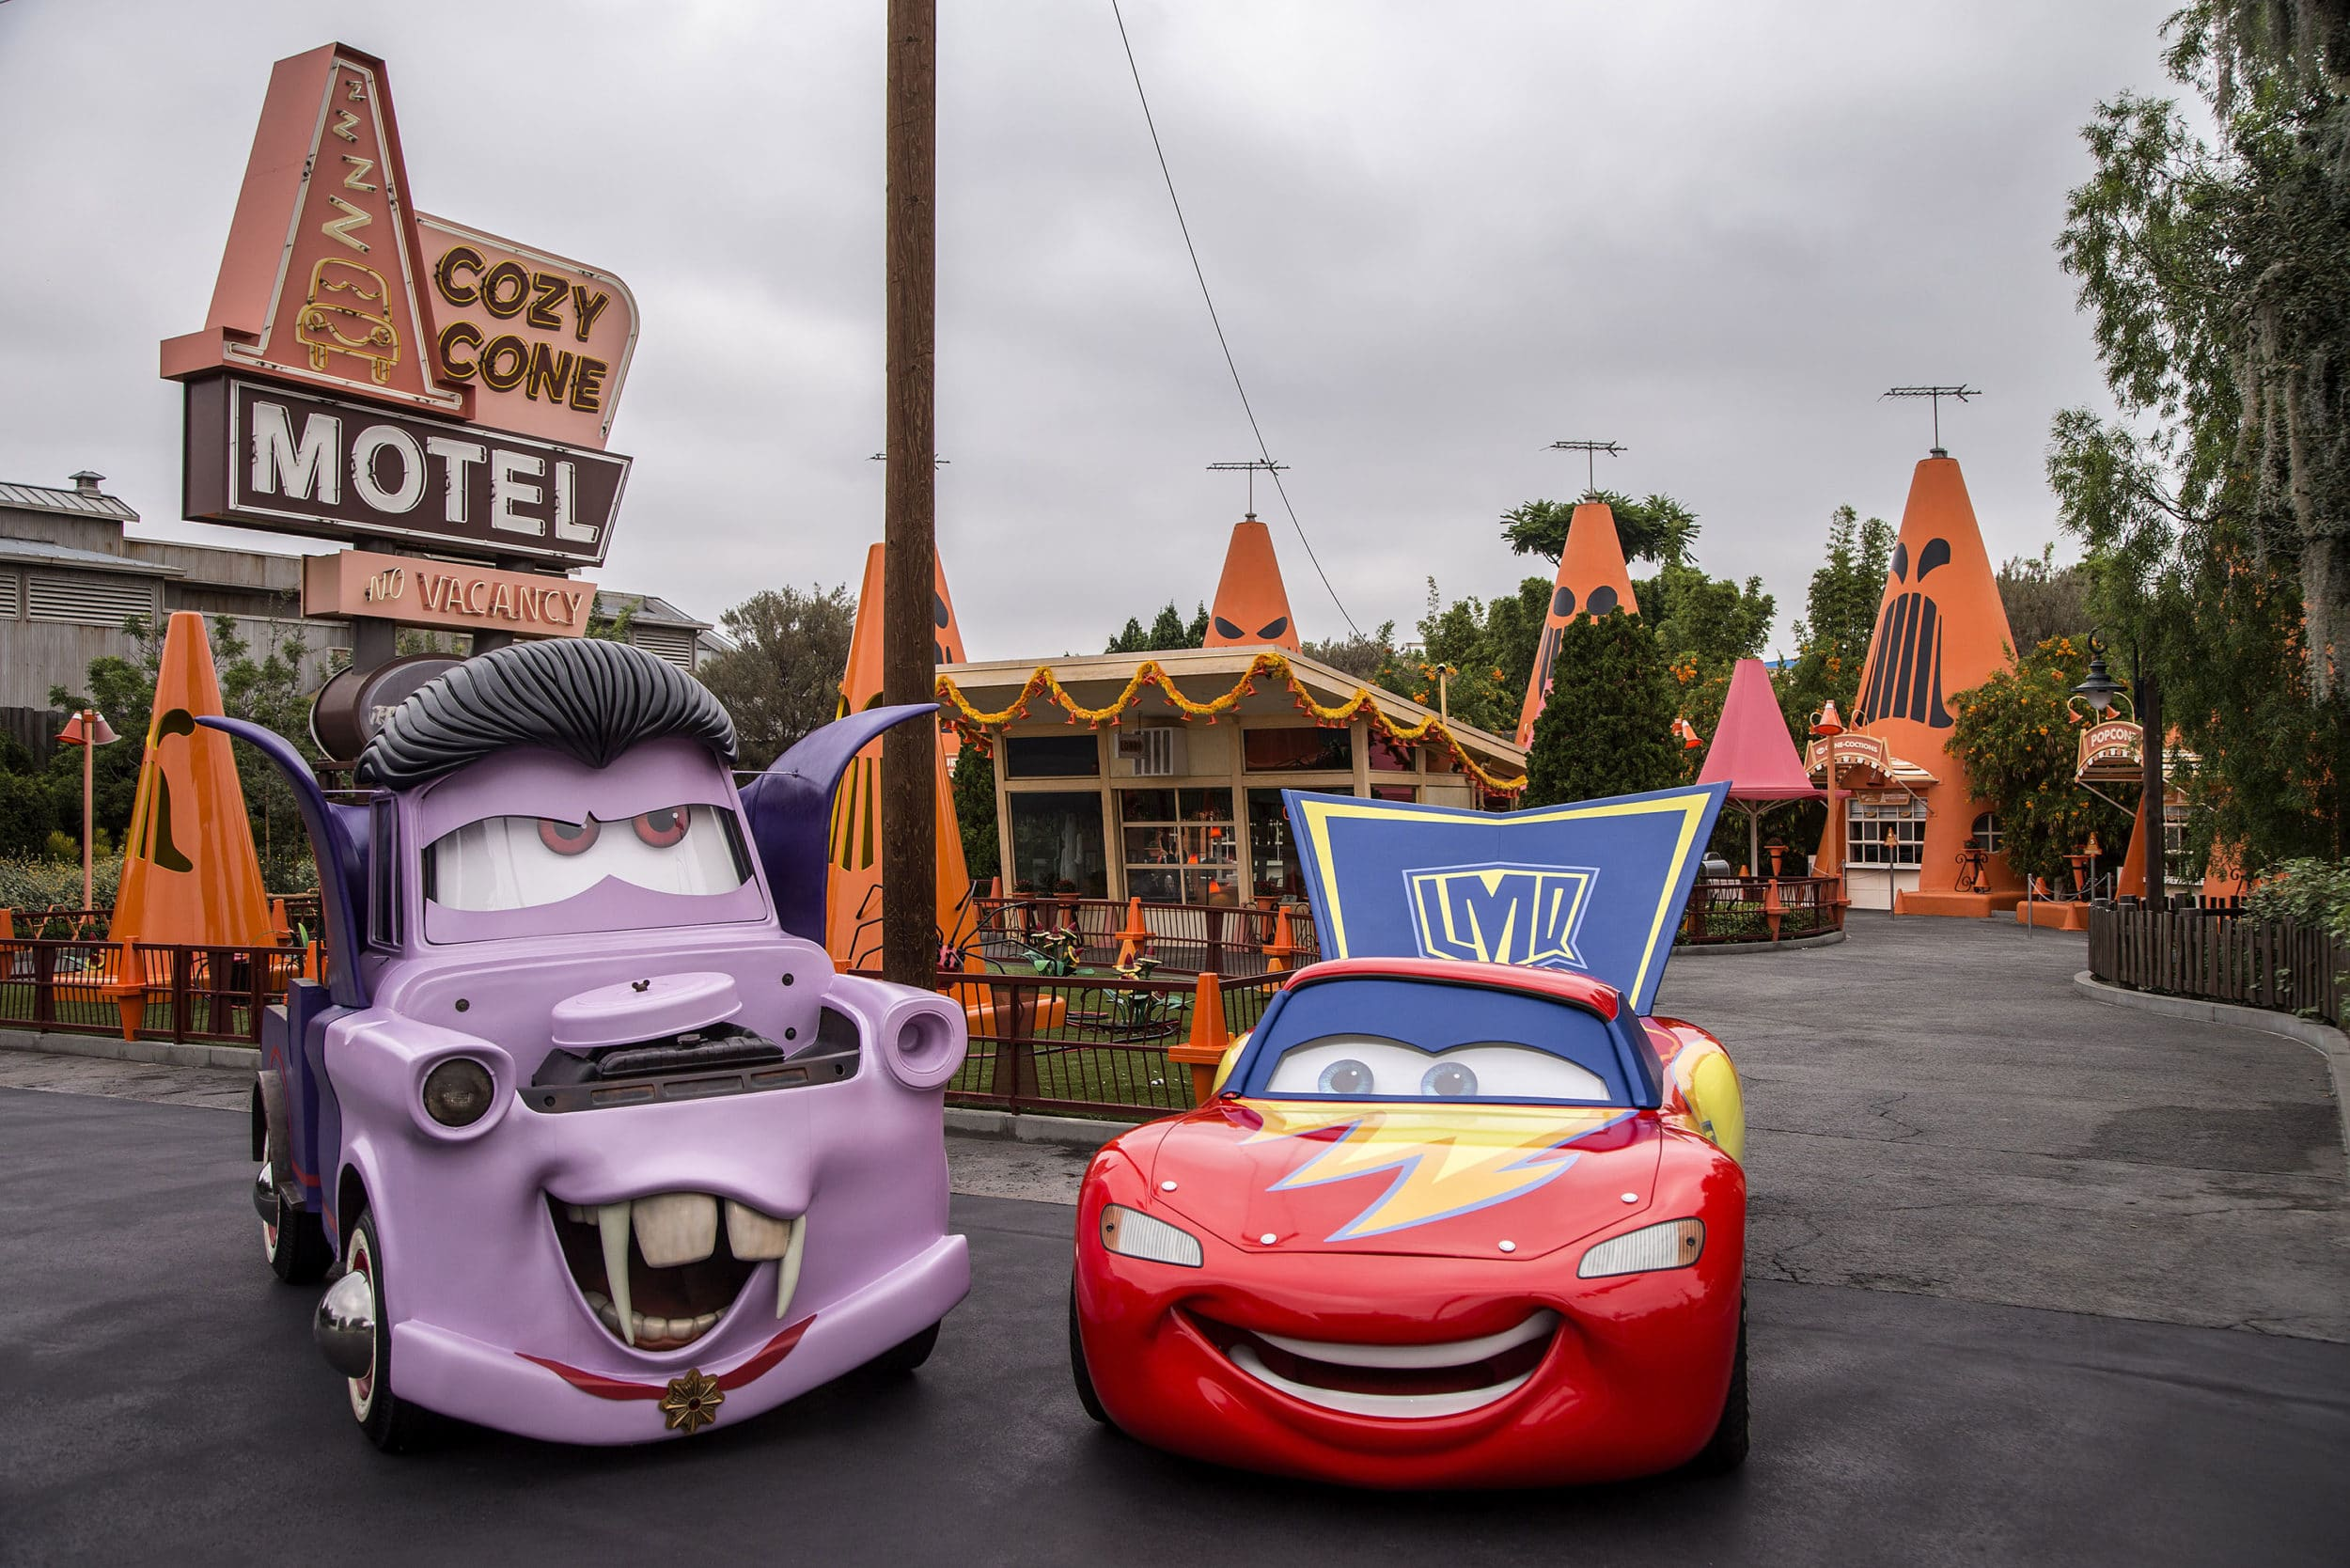 Disneyland Halloween: Mater in costume